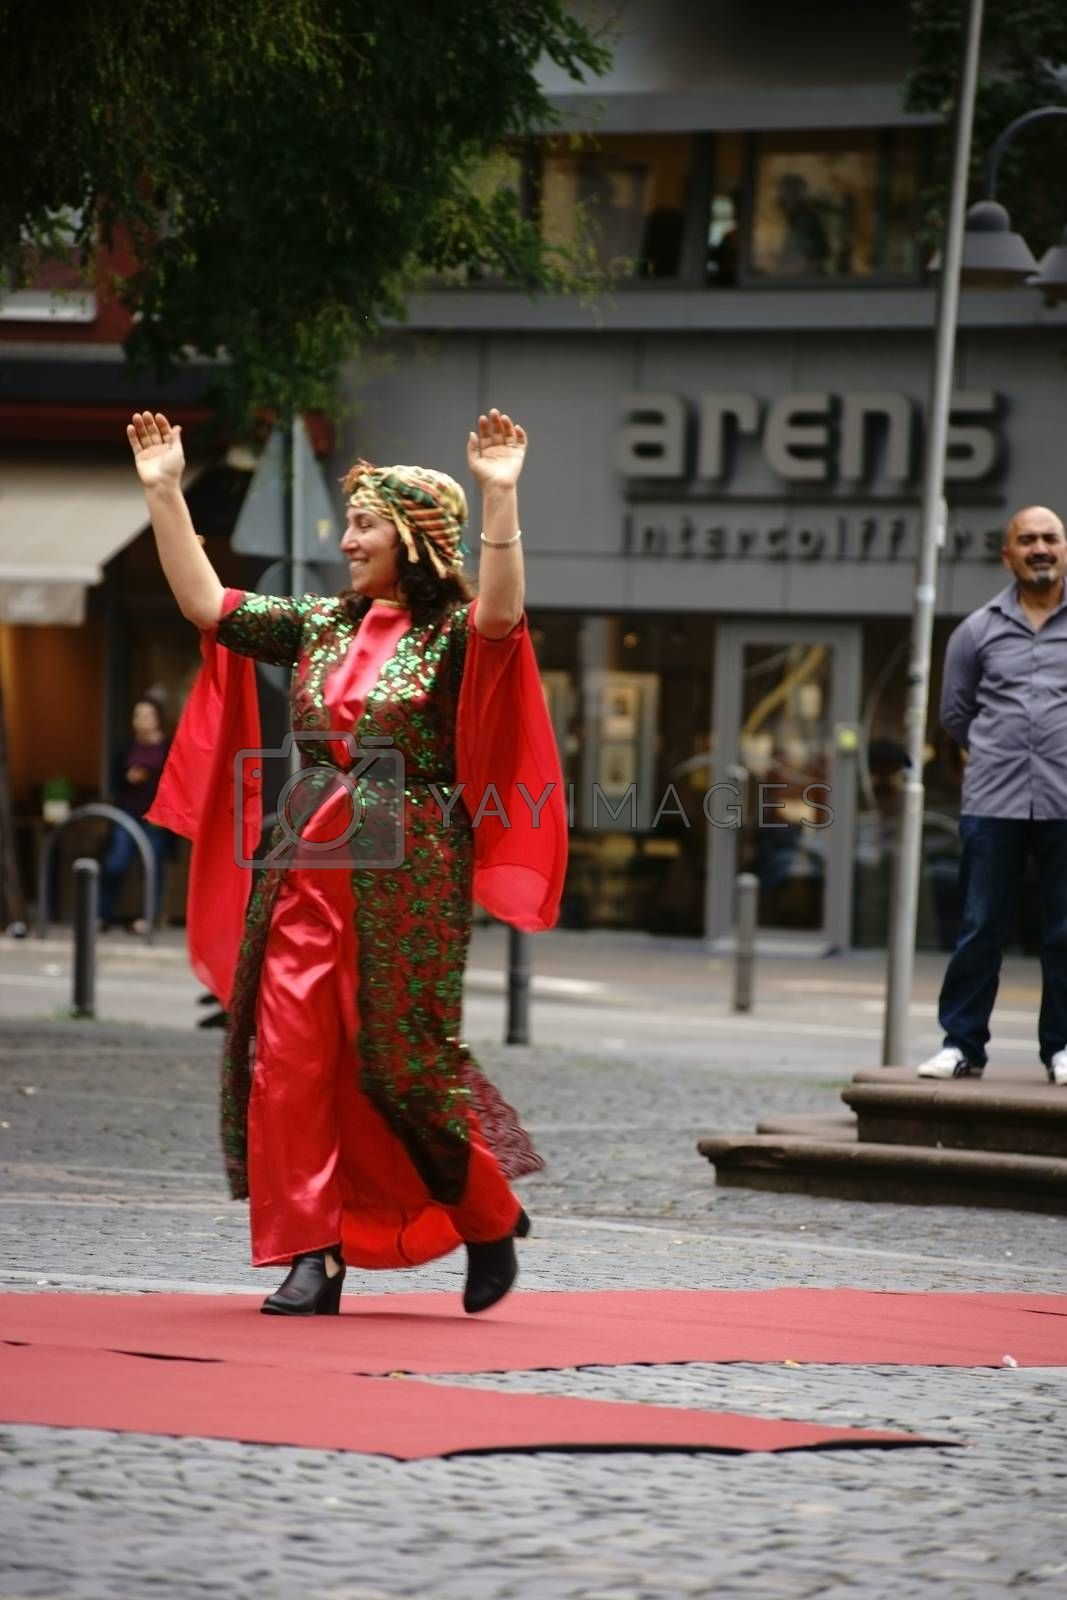 Mainz, Germany - September 25, 2015: A Kurdish woman presenting a colorful traditional costume at an event organized by the Intercultural Weeks on September 25, 2015 in Mainz.